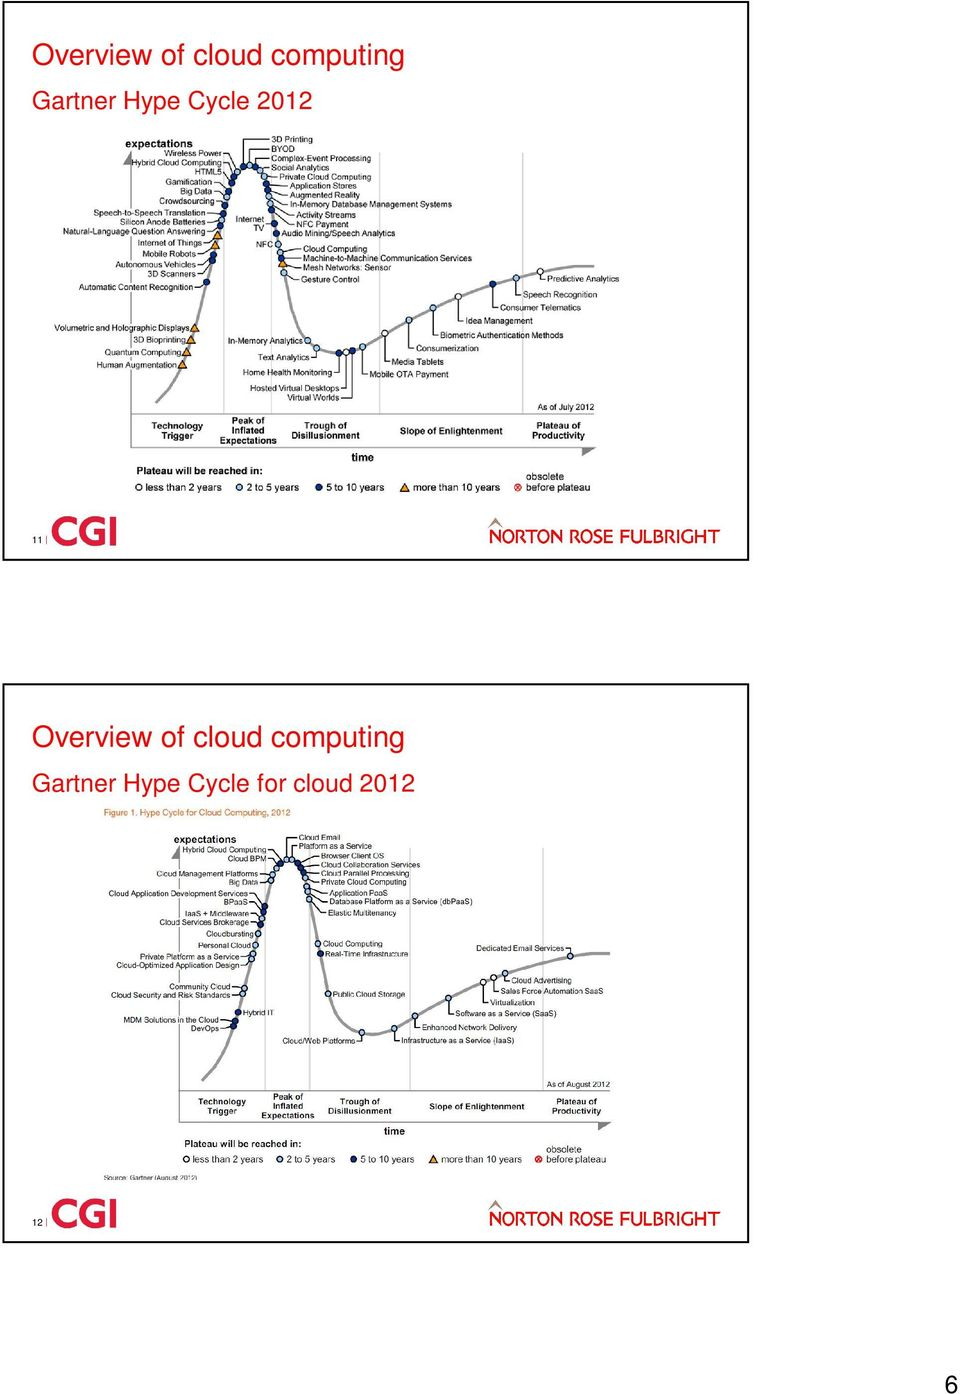 Gartner Hype Cycle for cloud